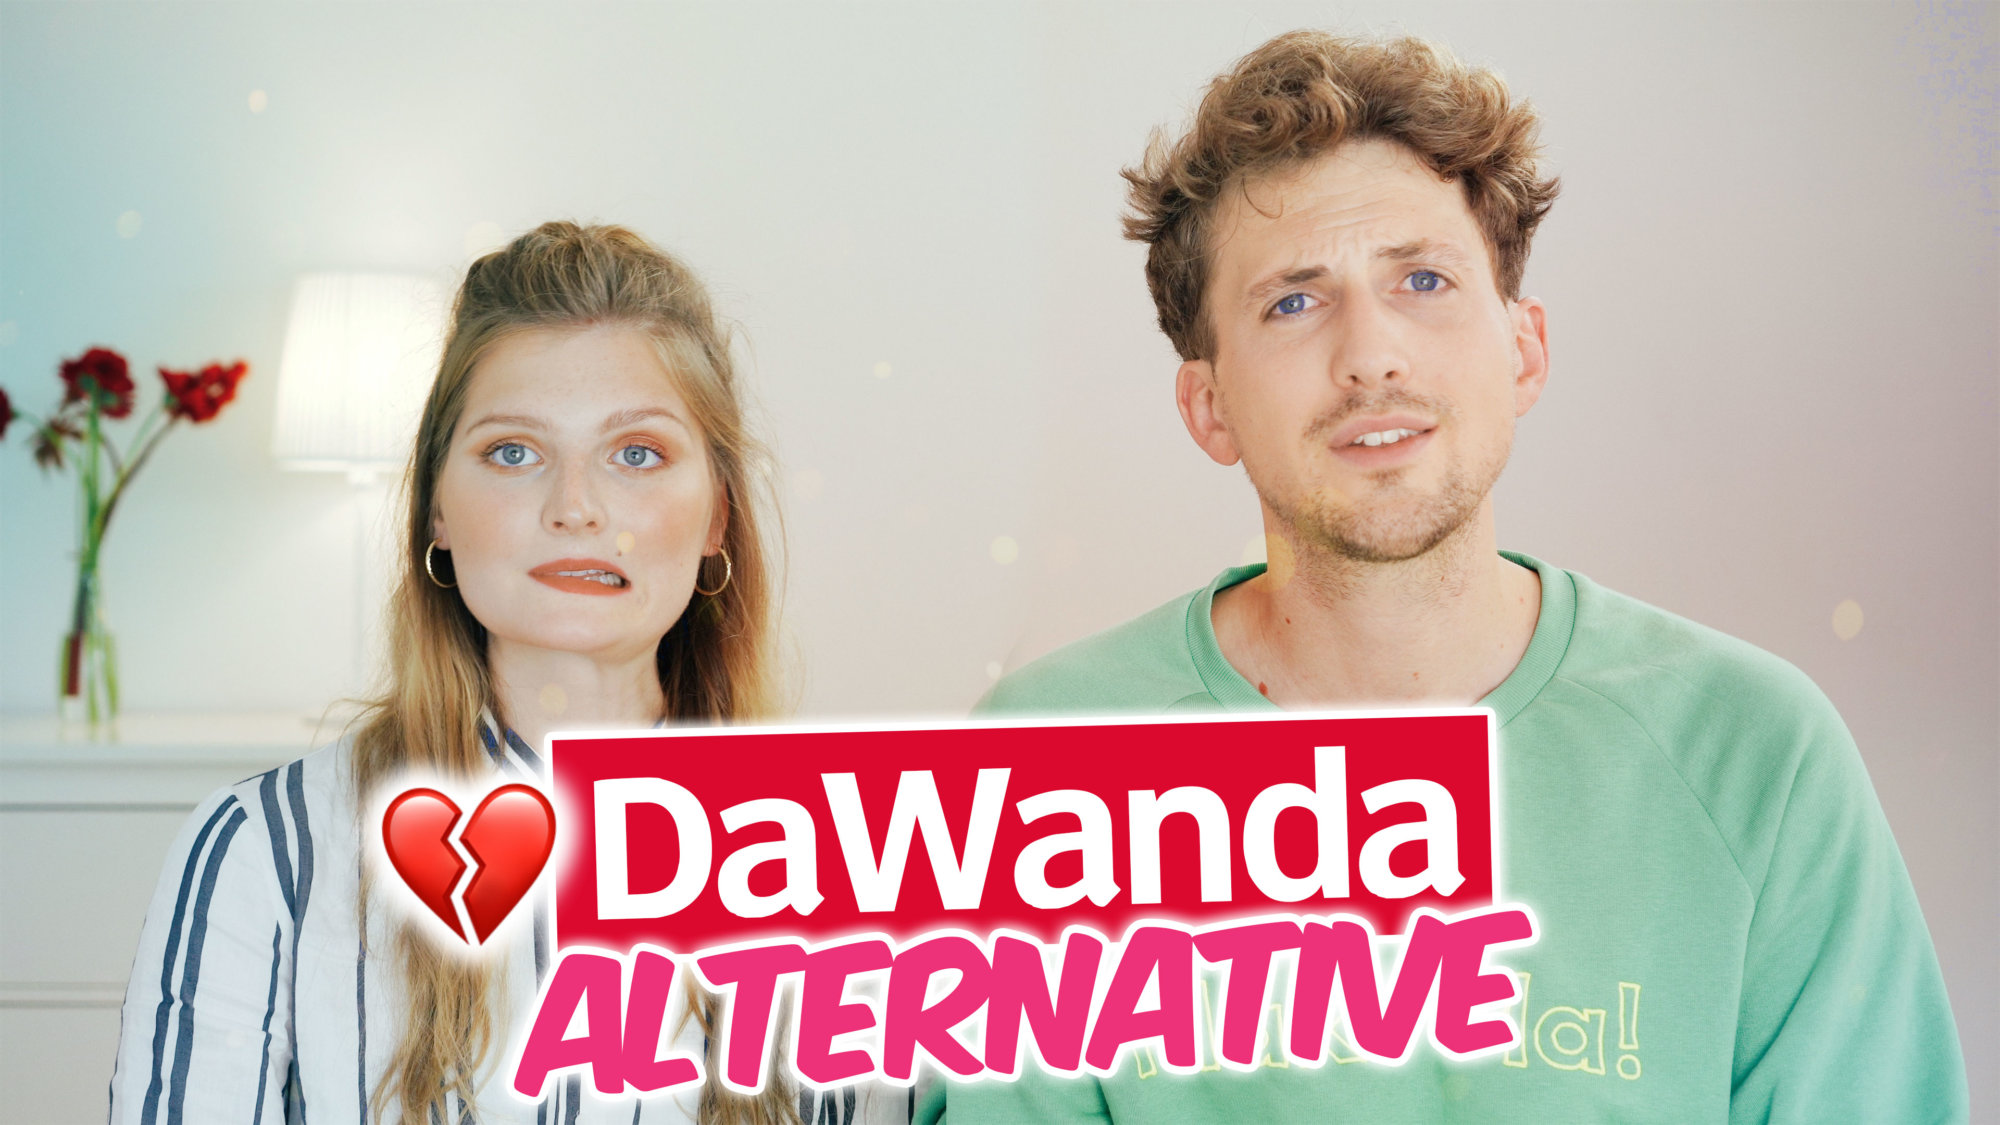 Dawanda Alternative dawanda alternative DaWanda Alternative dawanda alternative 1